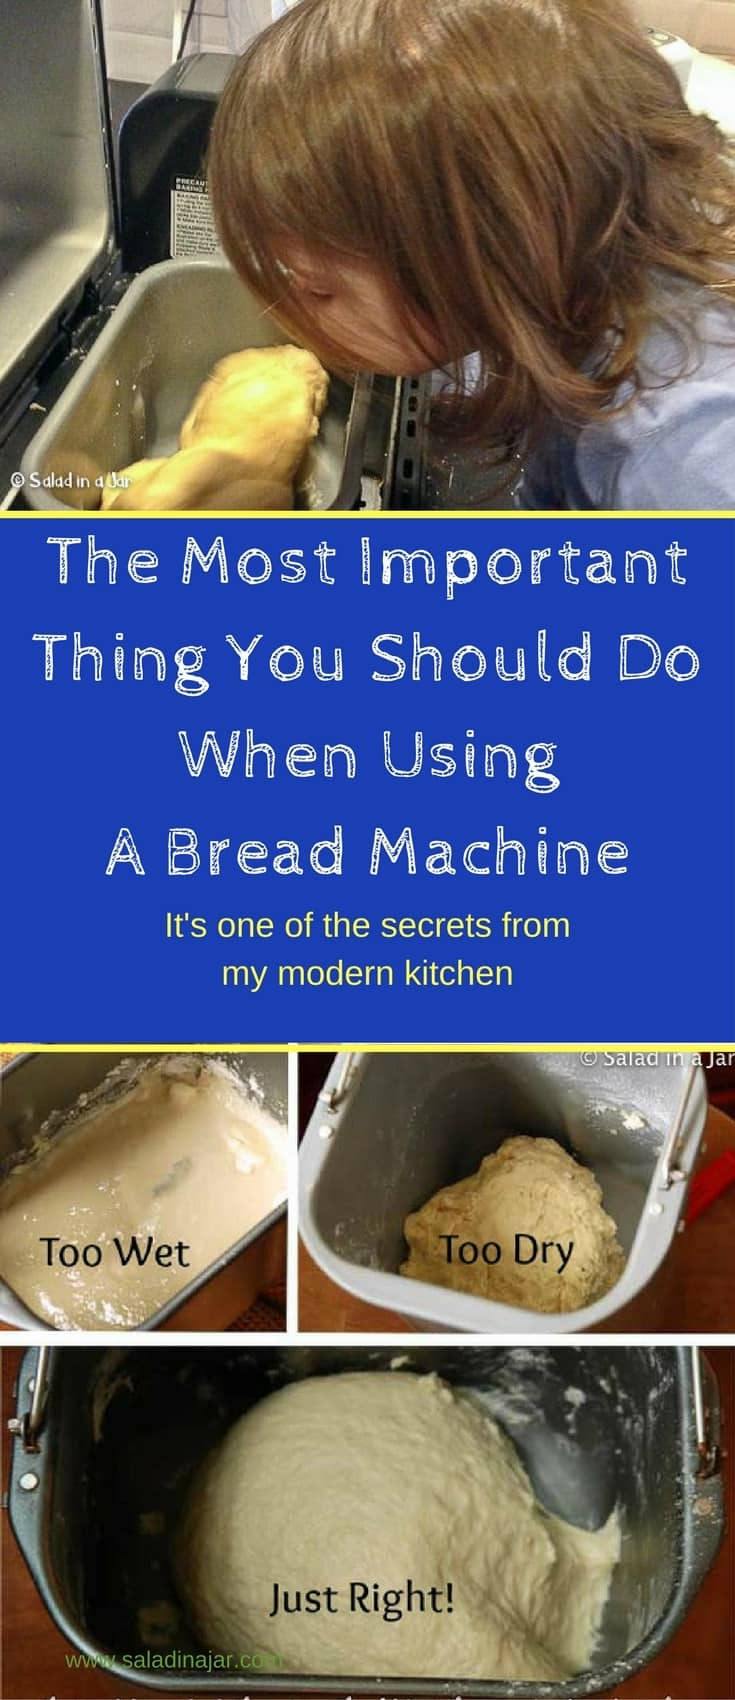 The Most Important Thing You Should Do When Using A Bread Machine, How to be successful with a bread machine, tips